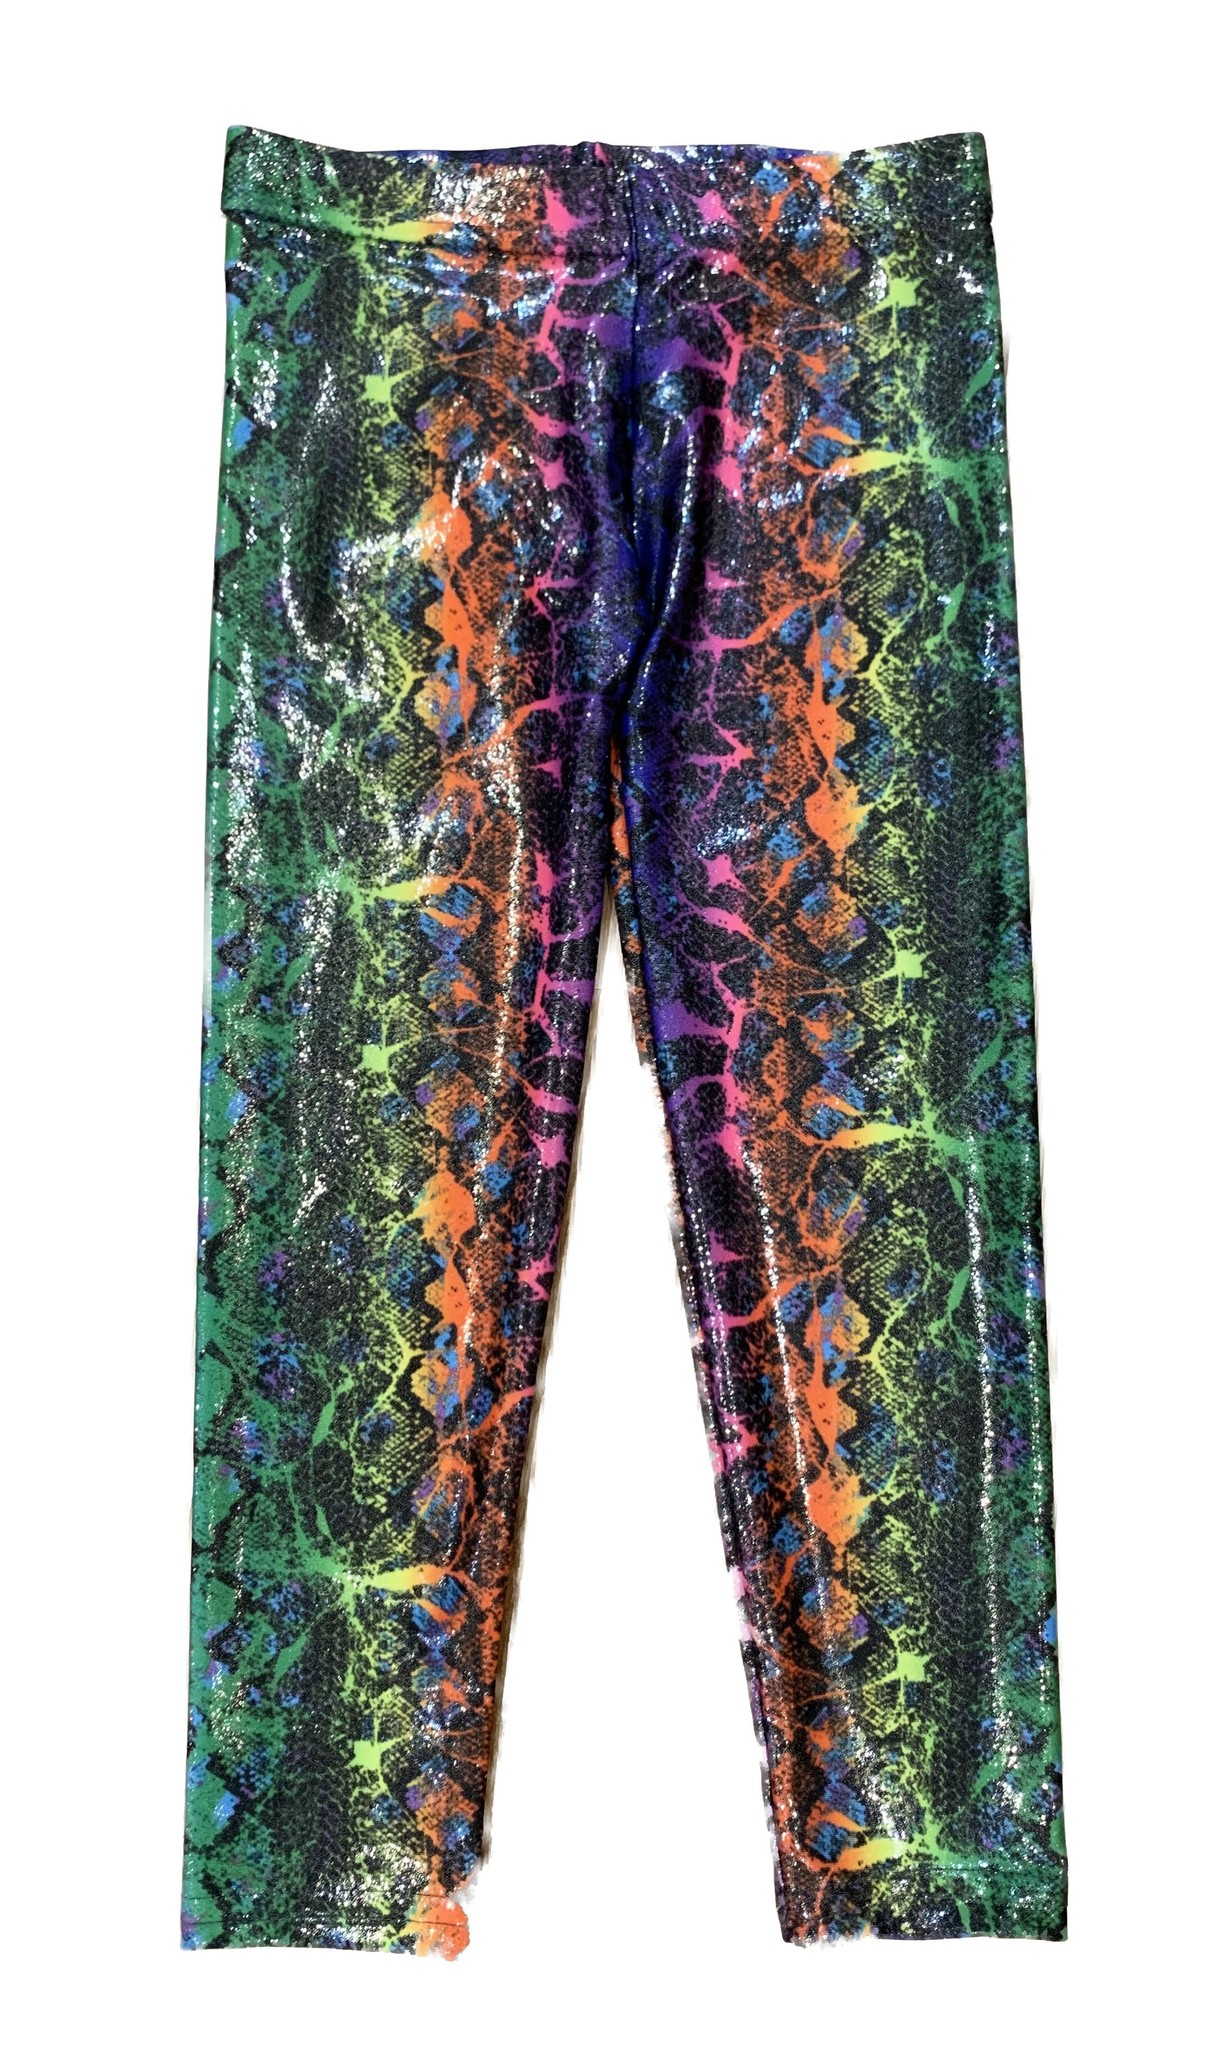 Dori Creations Glitter Snake Leggings